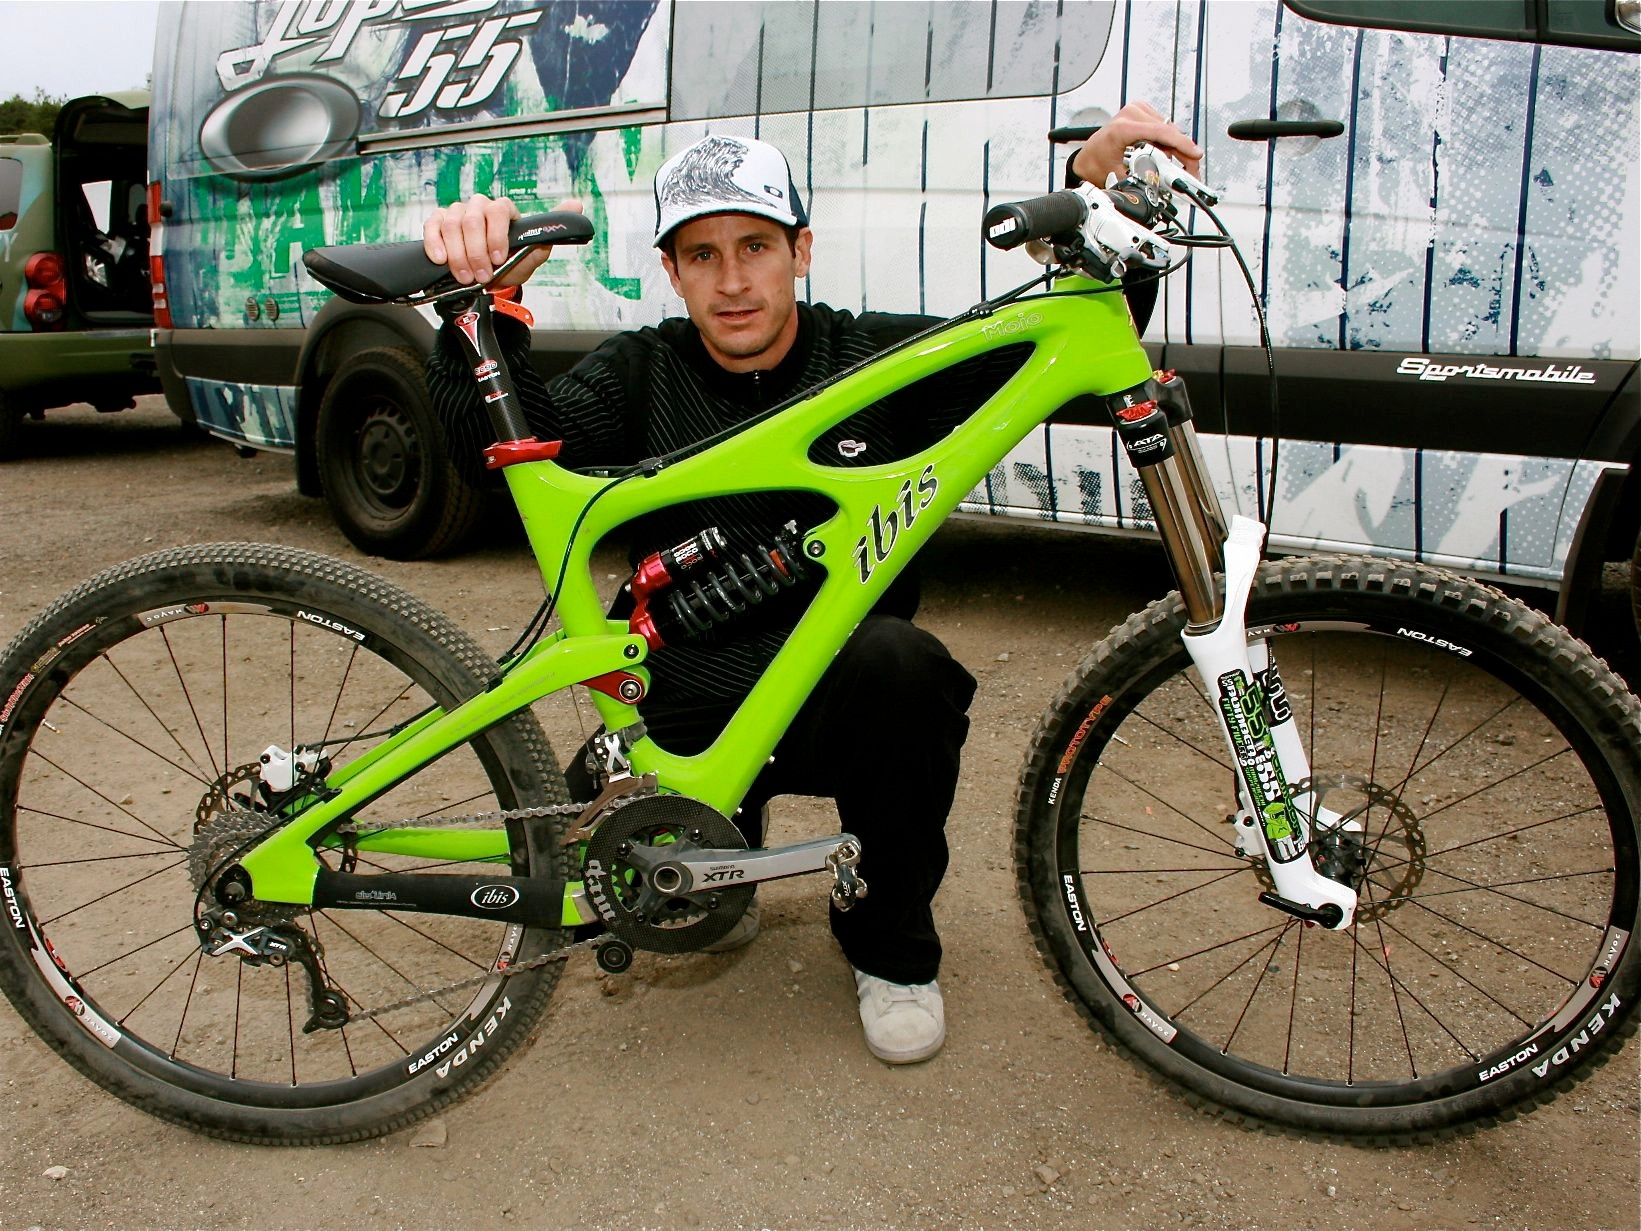 Flyin' Brian Lopes, current 4x world champ with his Ibis Mojo.